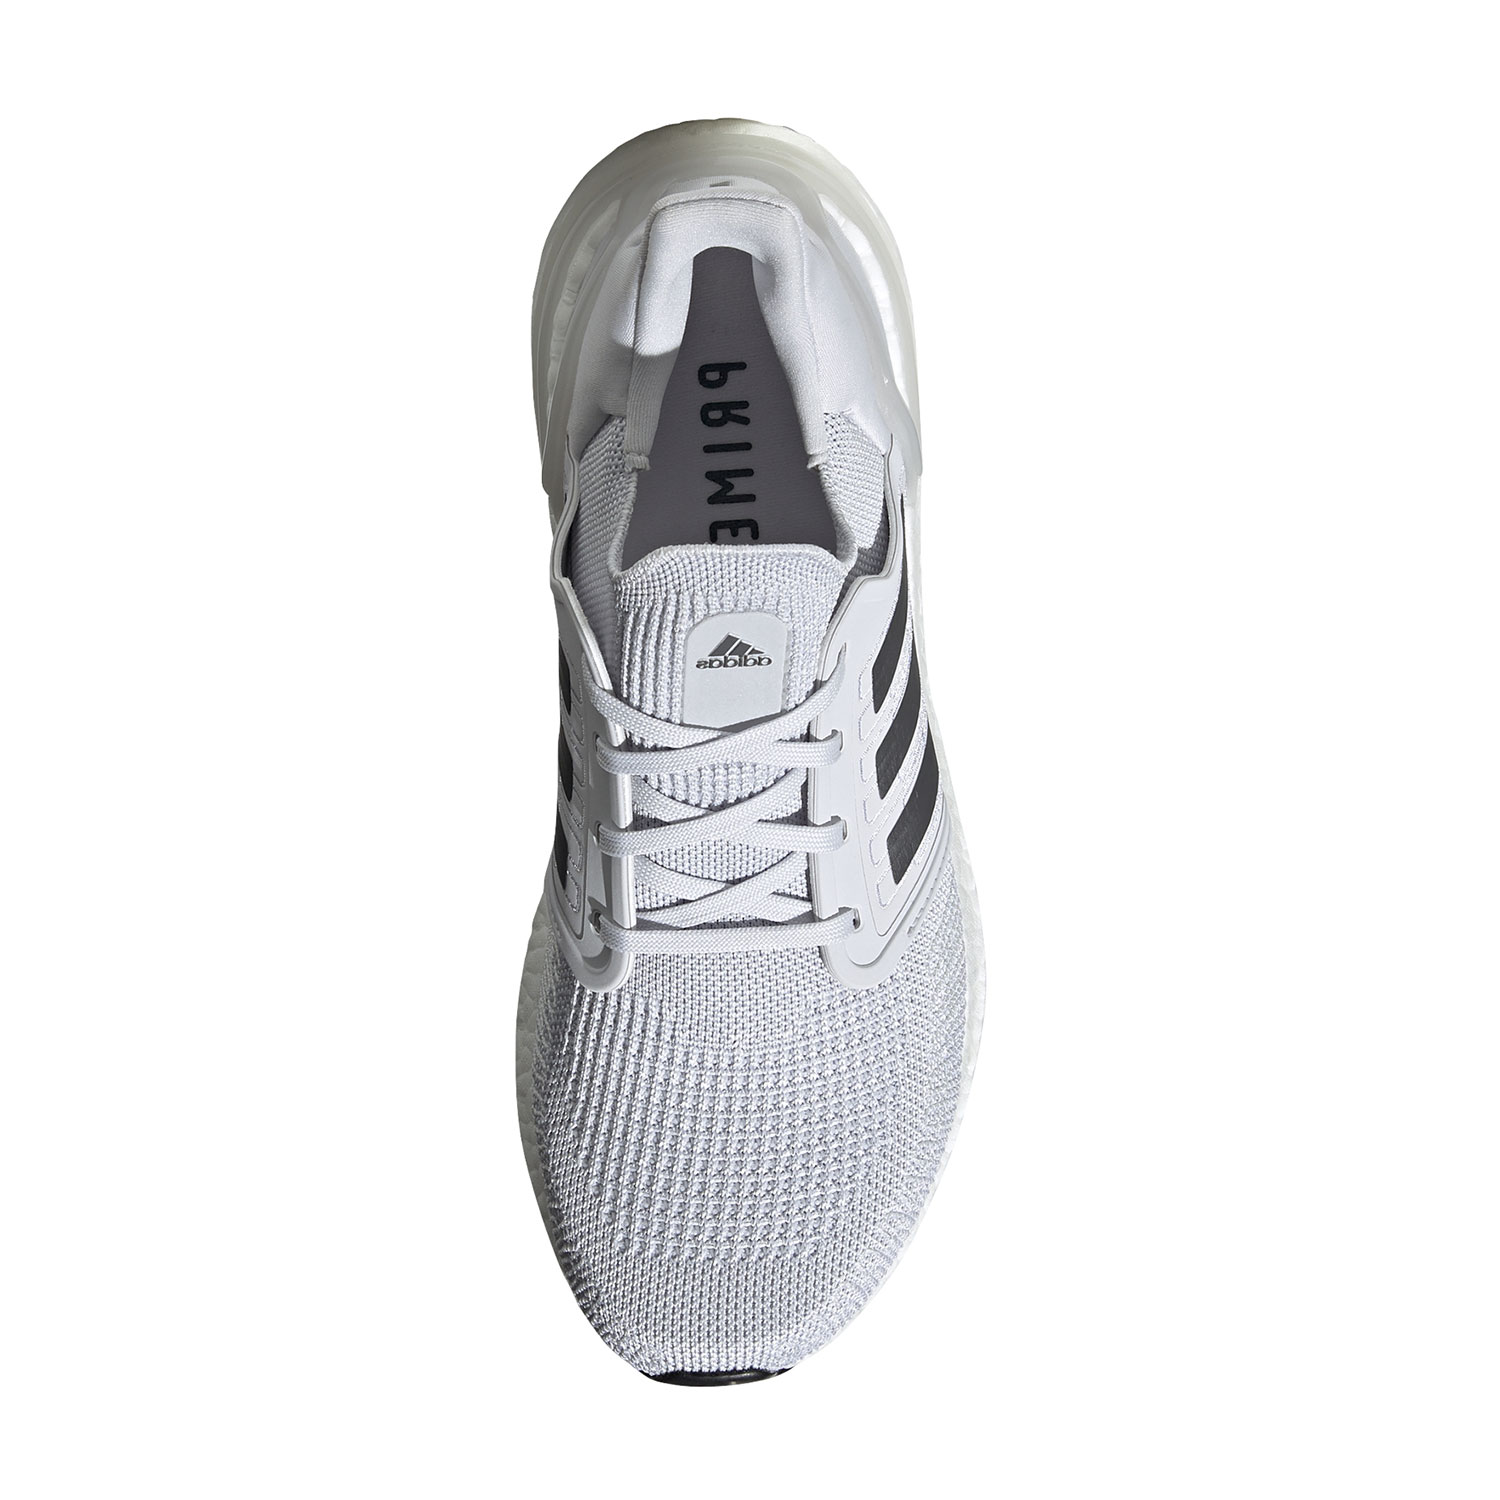 Adidas Ultraboost 20 - Dash Grey/Grey Five/Ftwr White